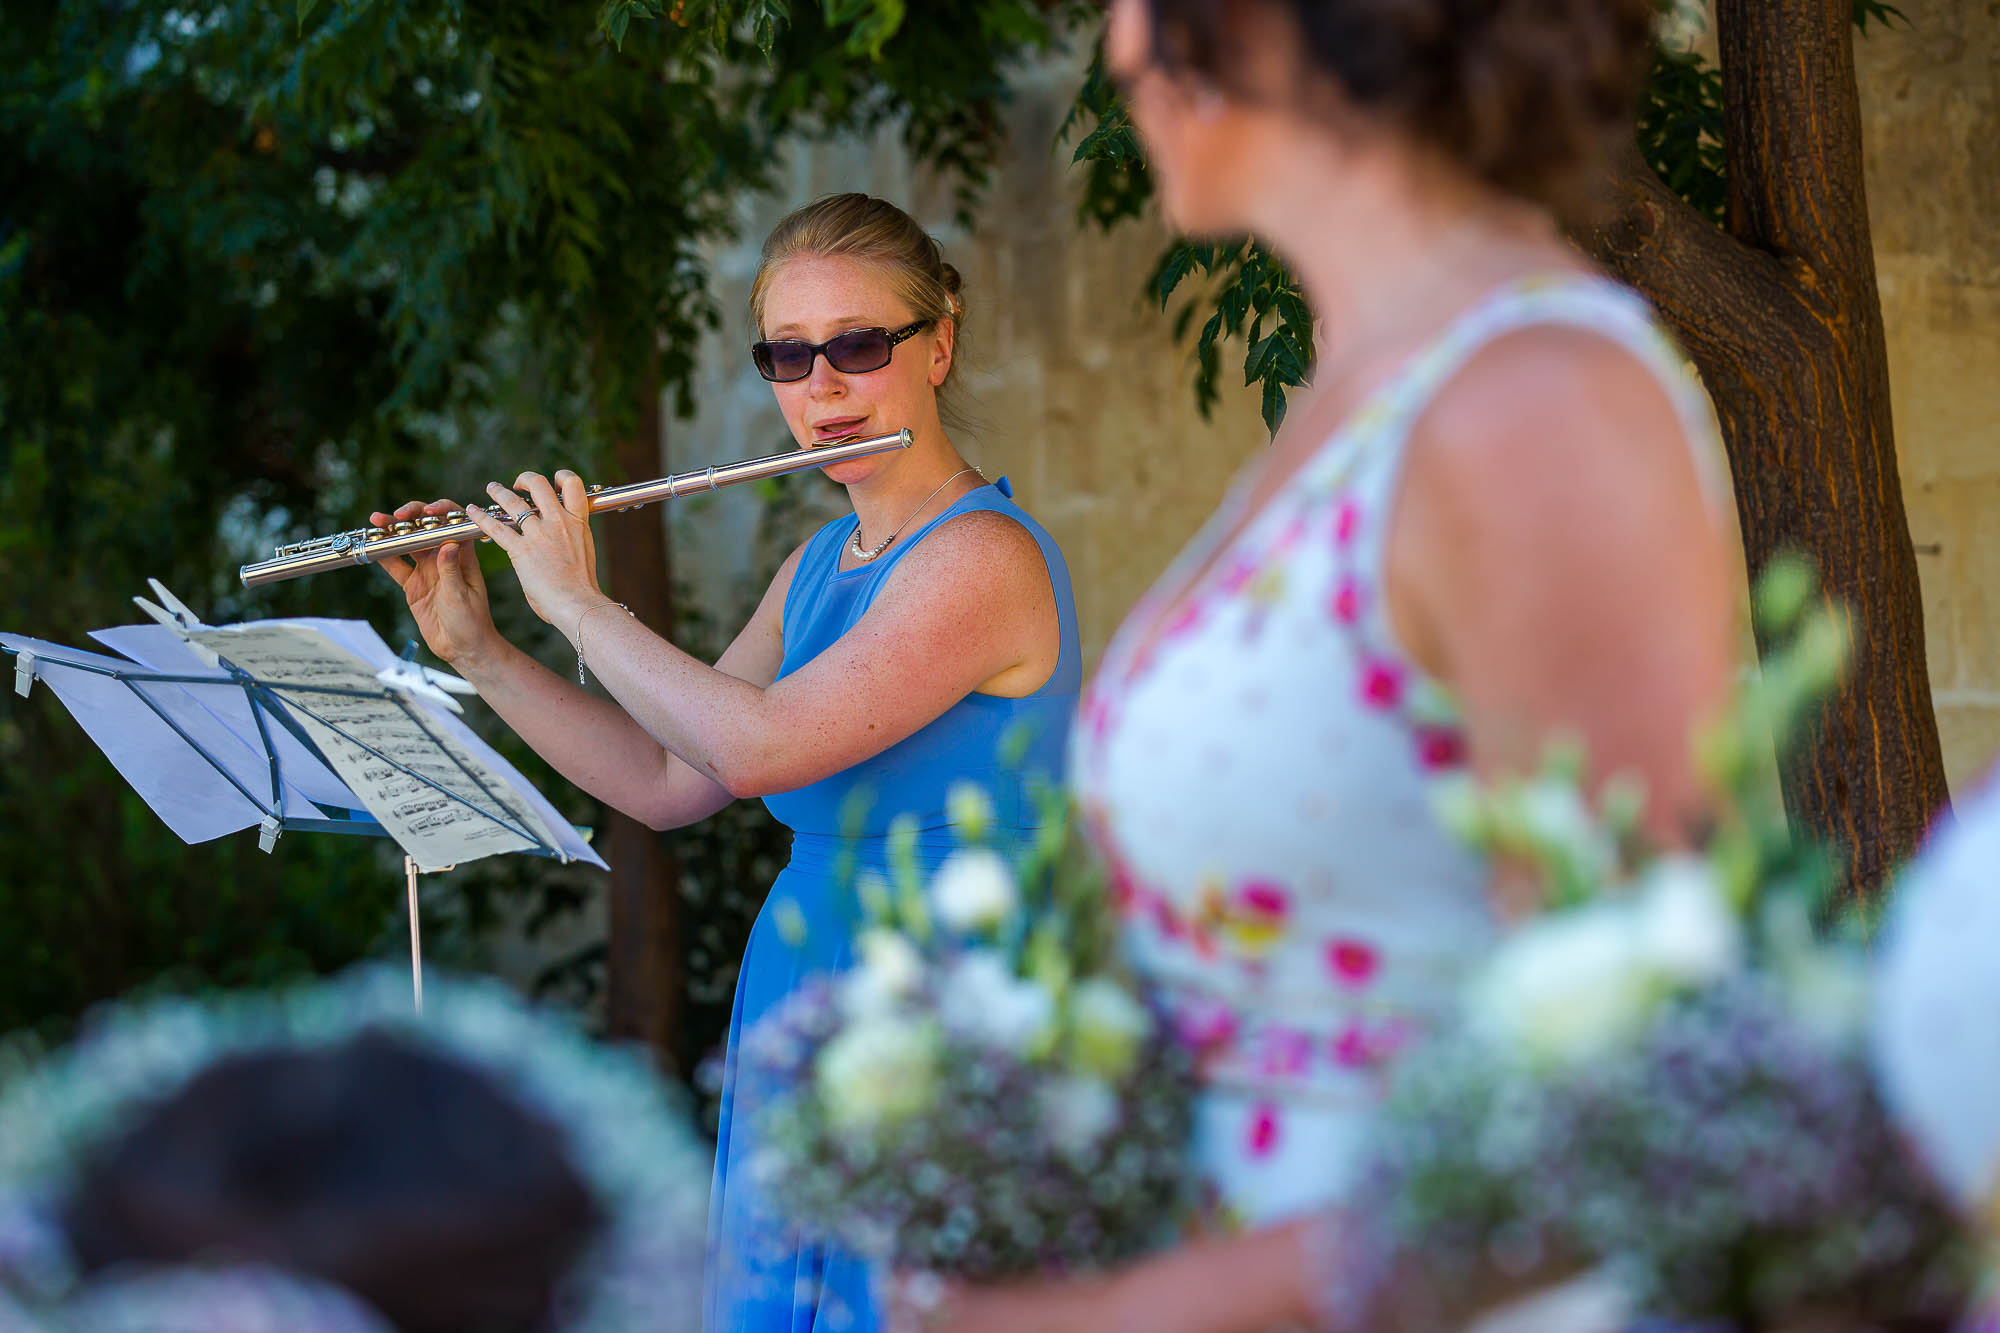 Wedding musician plays the flute during the wedding ceremony. Photo by Elliot Nichol Photography